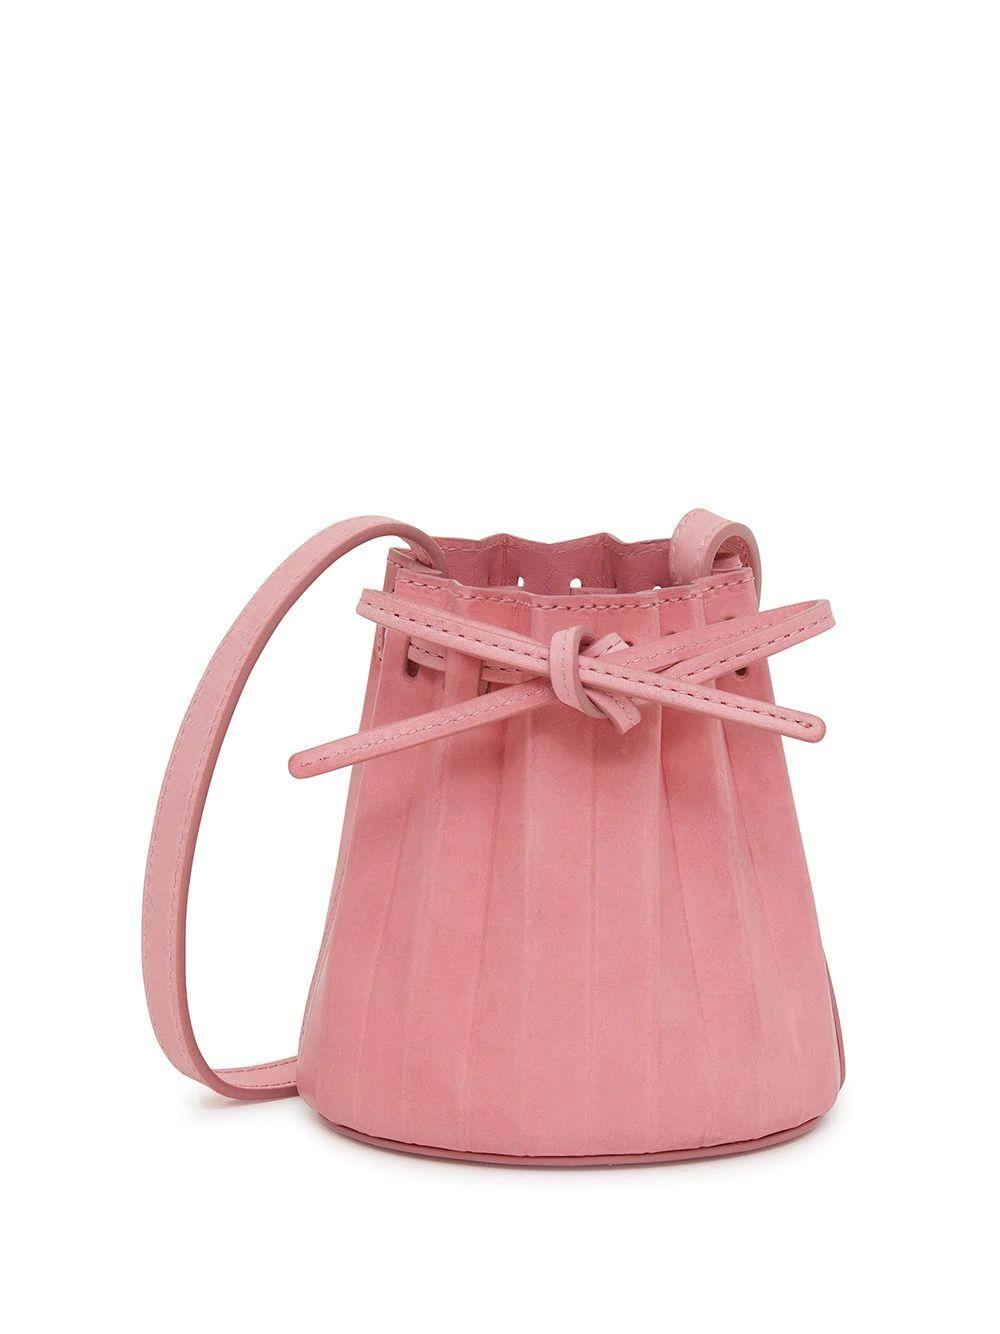 Baby Pleated Bucket Bag Item # WS21H005KD